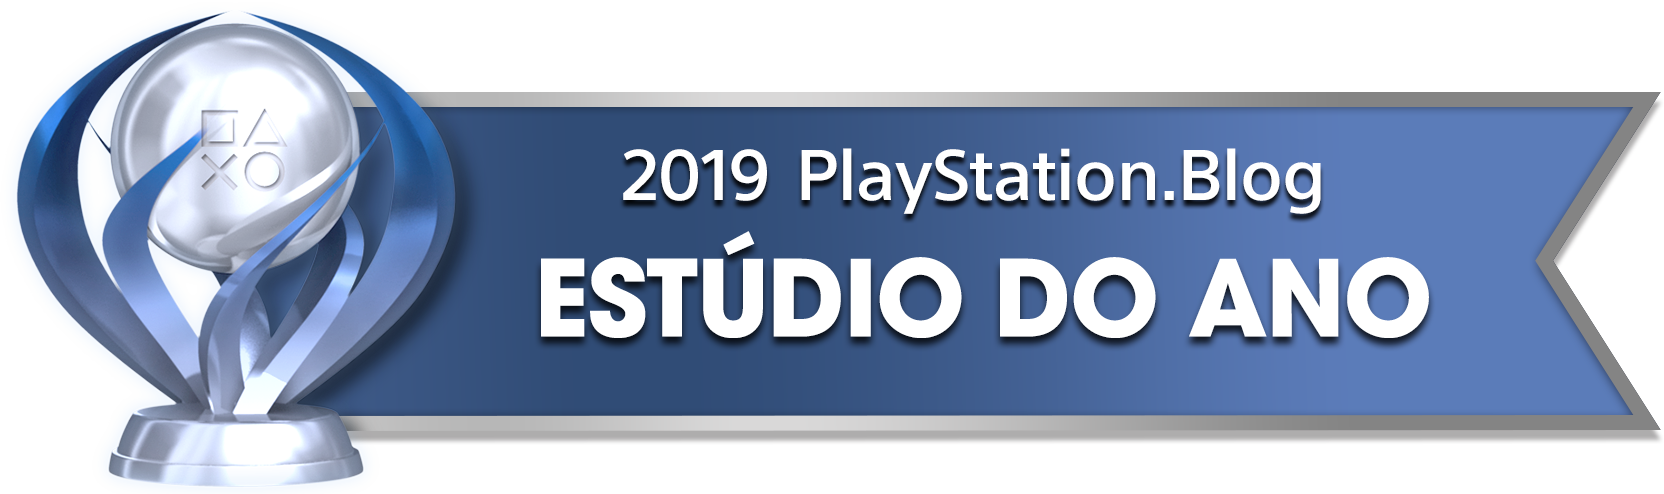 PS Blog Game of the Year 2019 - Studio of the Year - 1 - Platinum